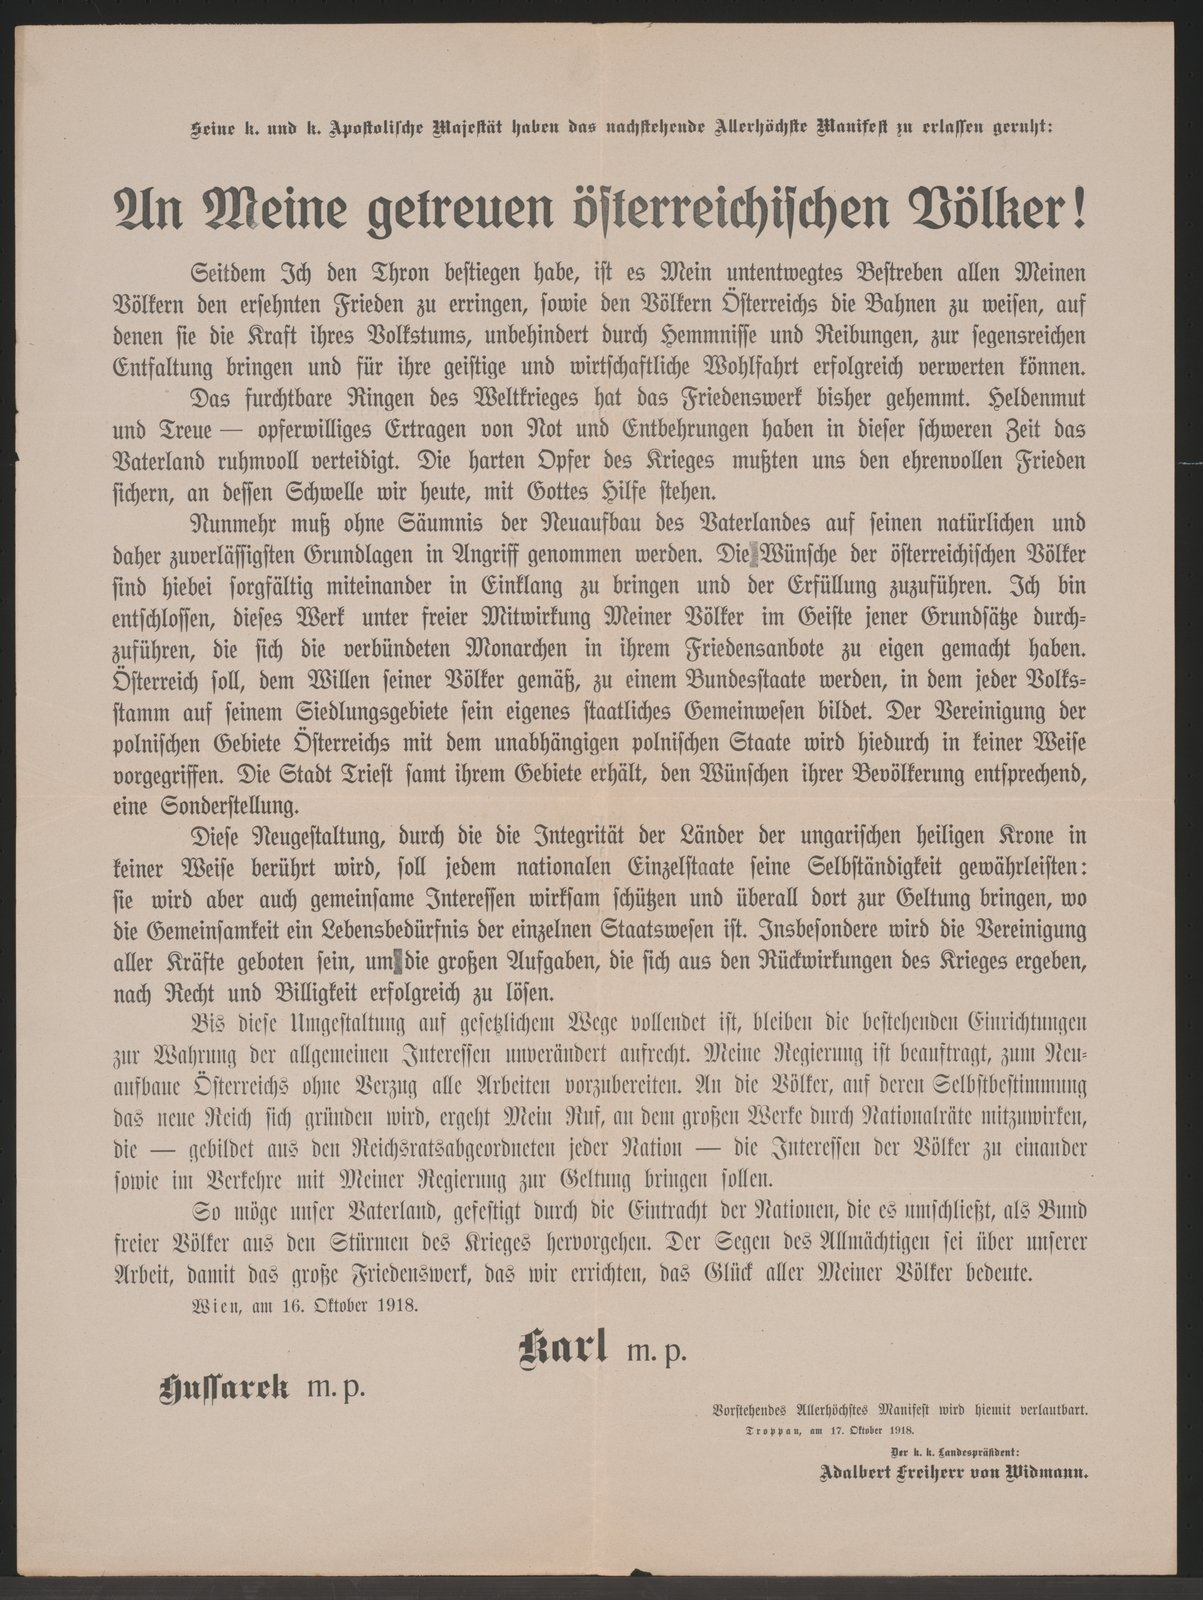 Declaration of the Emperor of Austria about the restructuring of the state Austria, 1918-10-16 Troppau, Österreichische Nationalbibliothek - Austrian National Library, Public Domain Mark